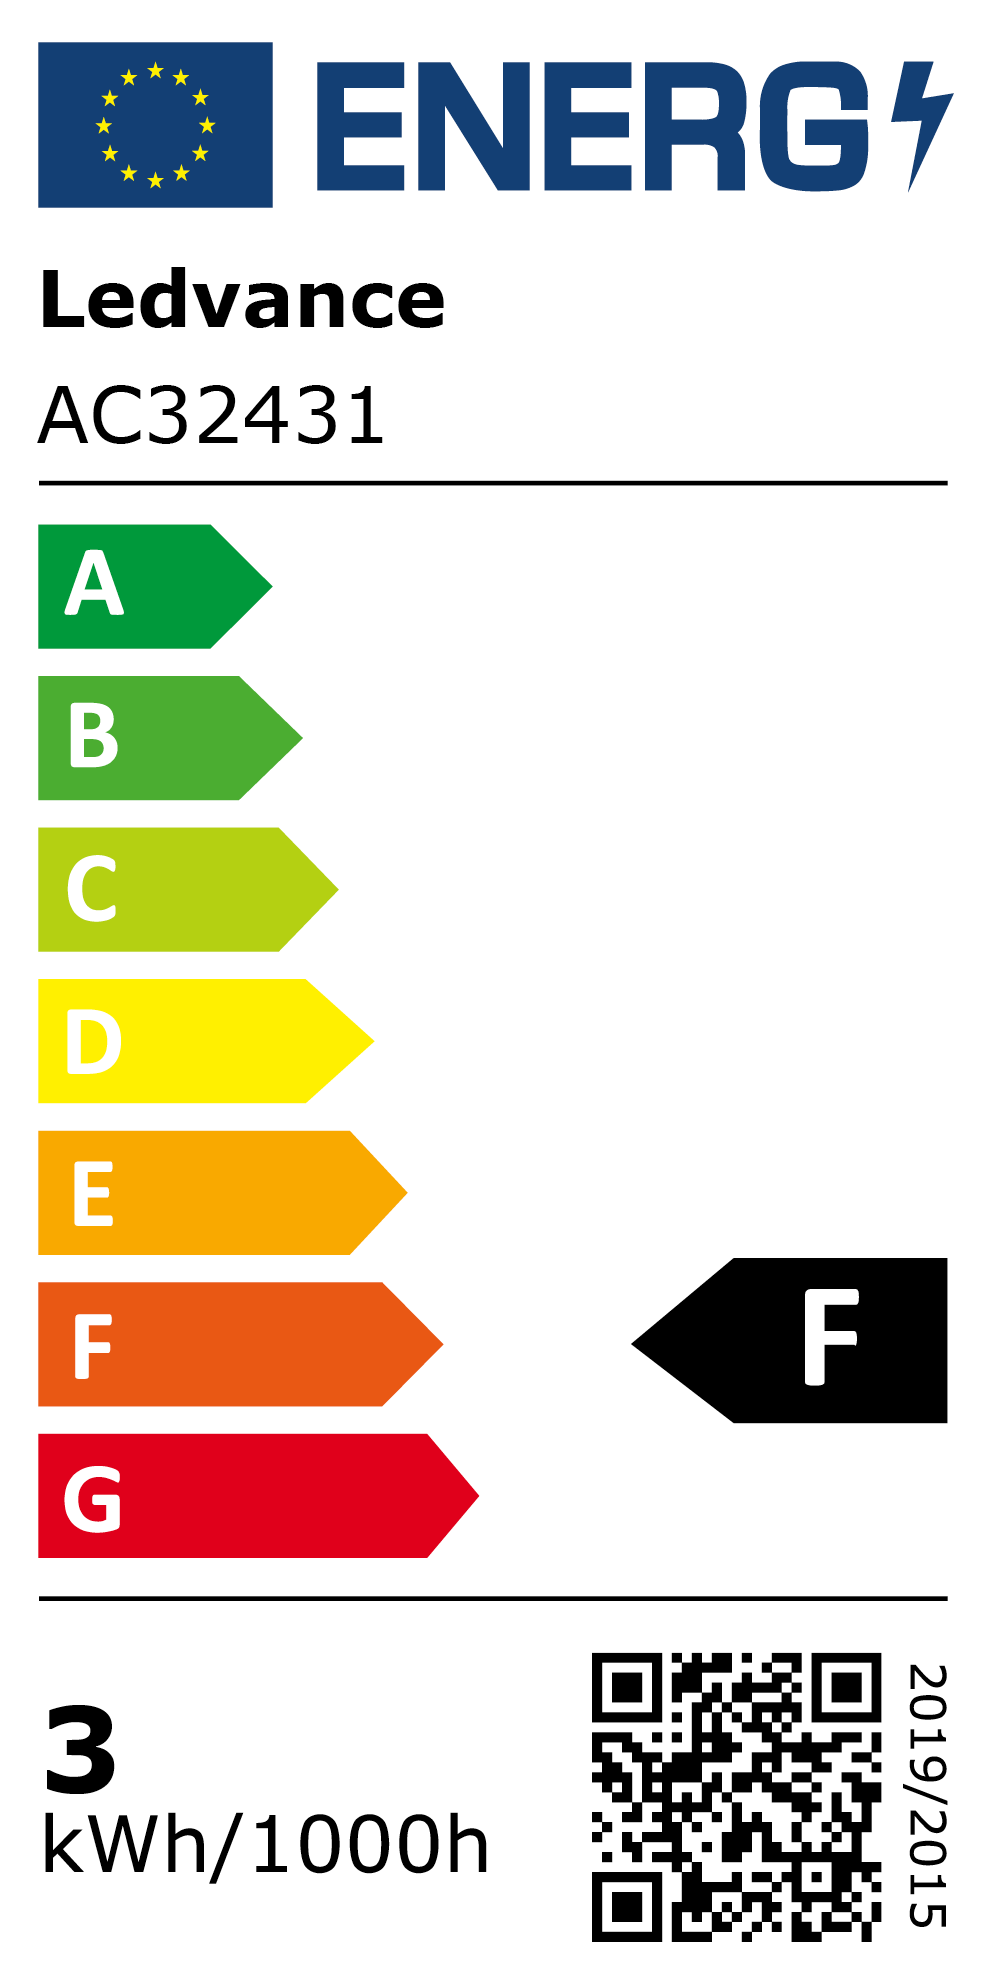 New 2021 Energy Rating Label: MPN AC32431